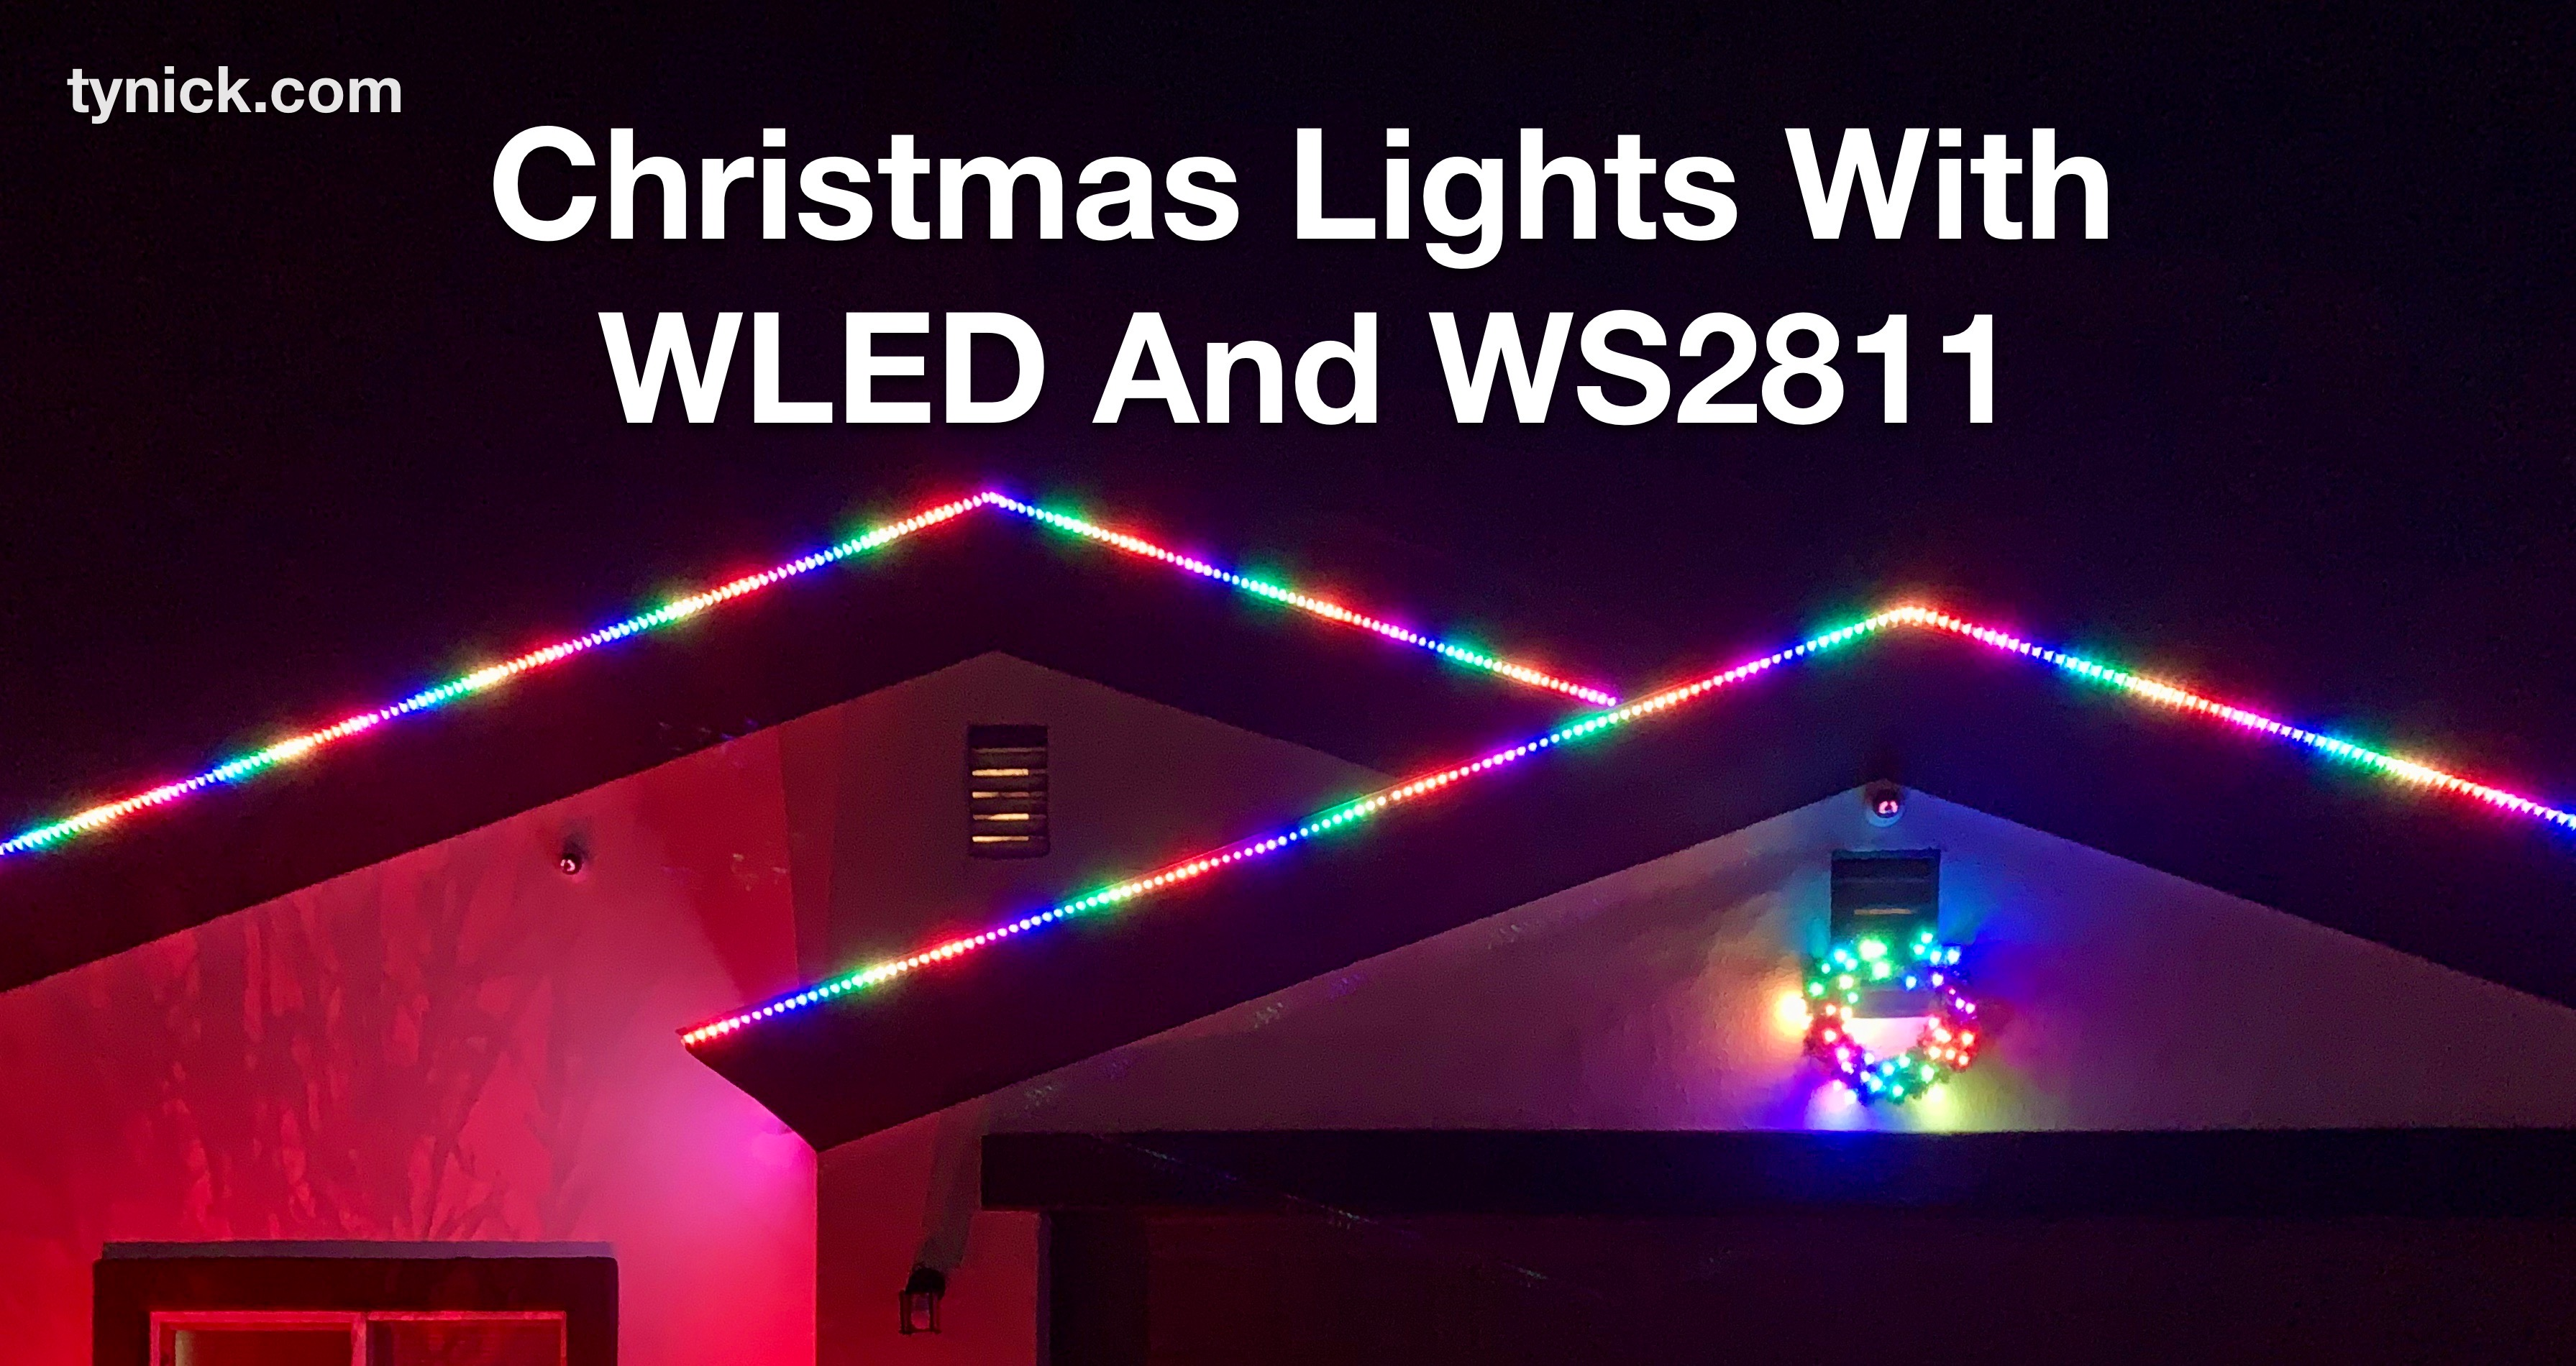 Christmas Lights With WLED